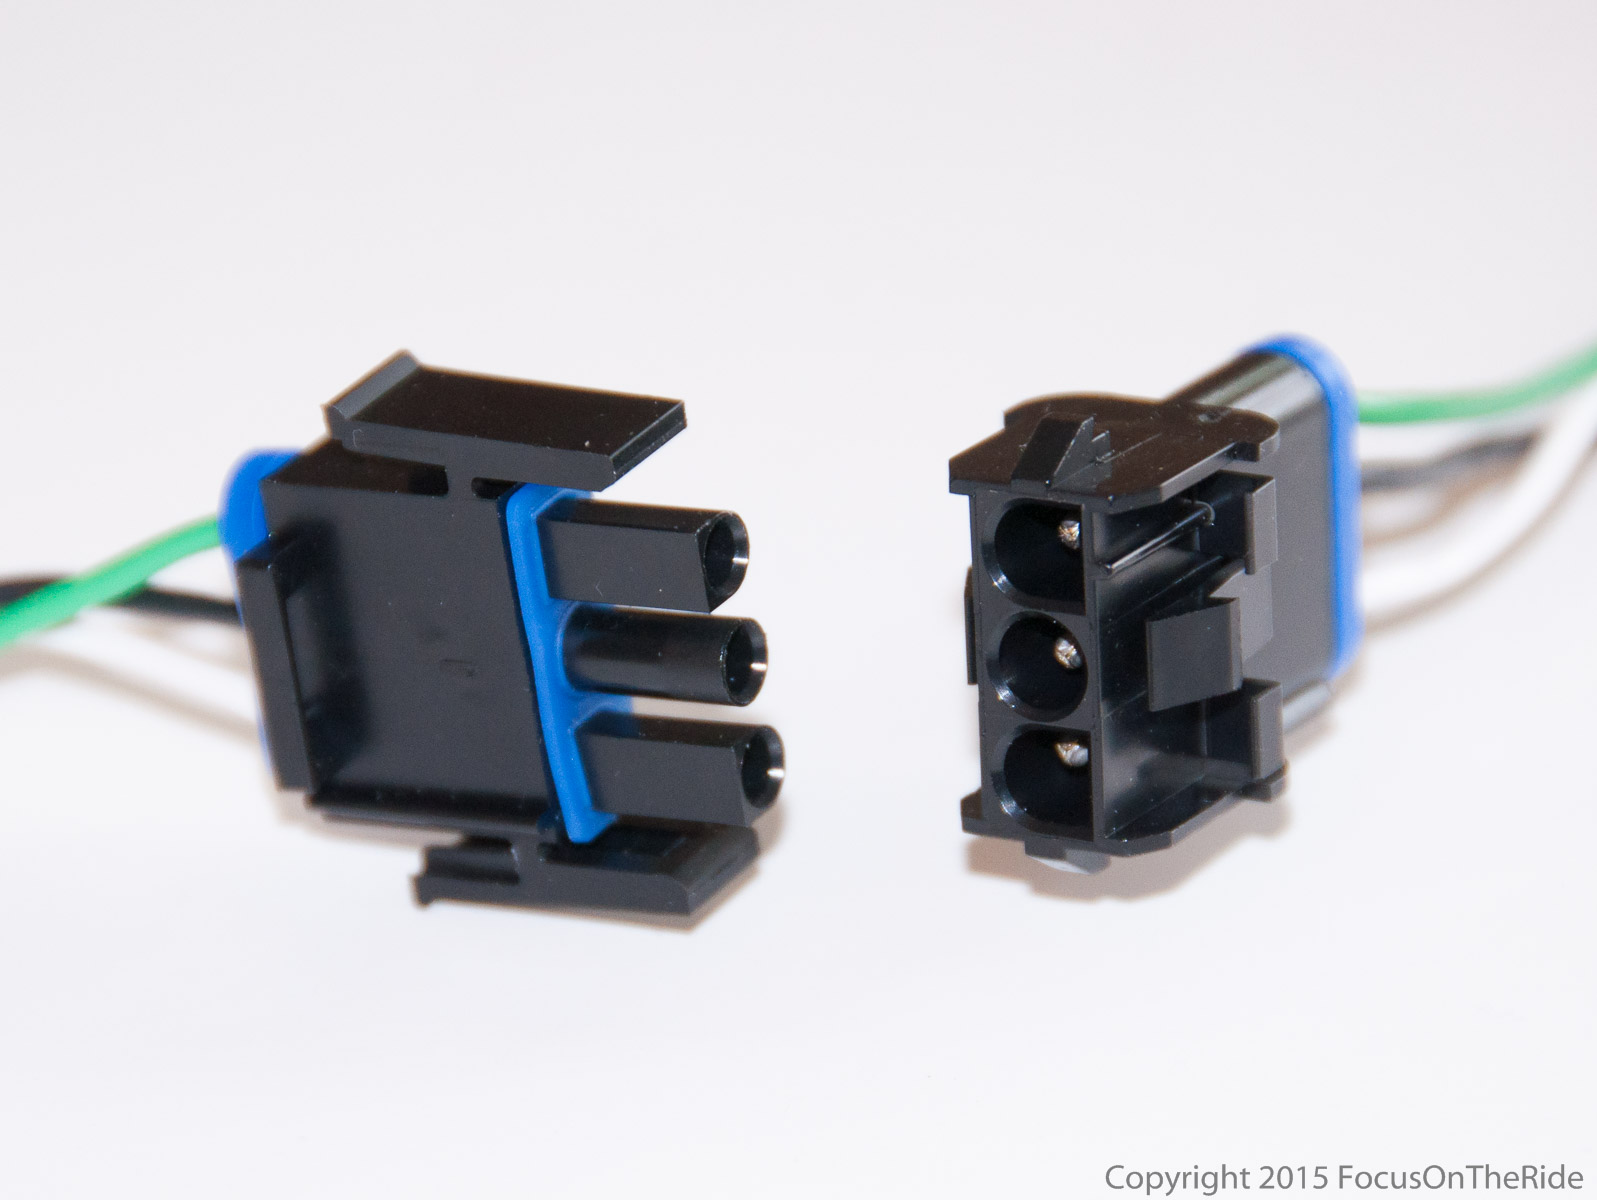 Light lead connectors